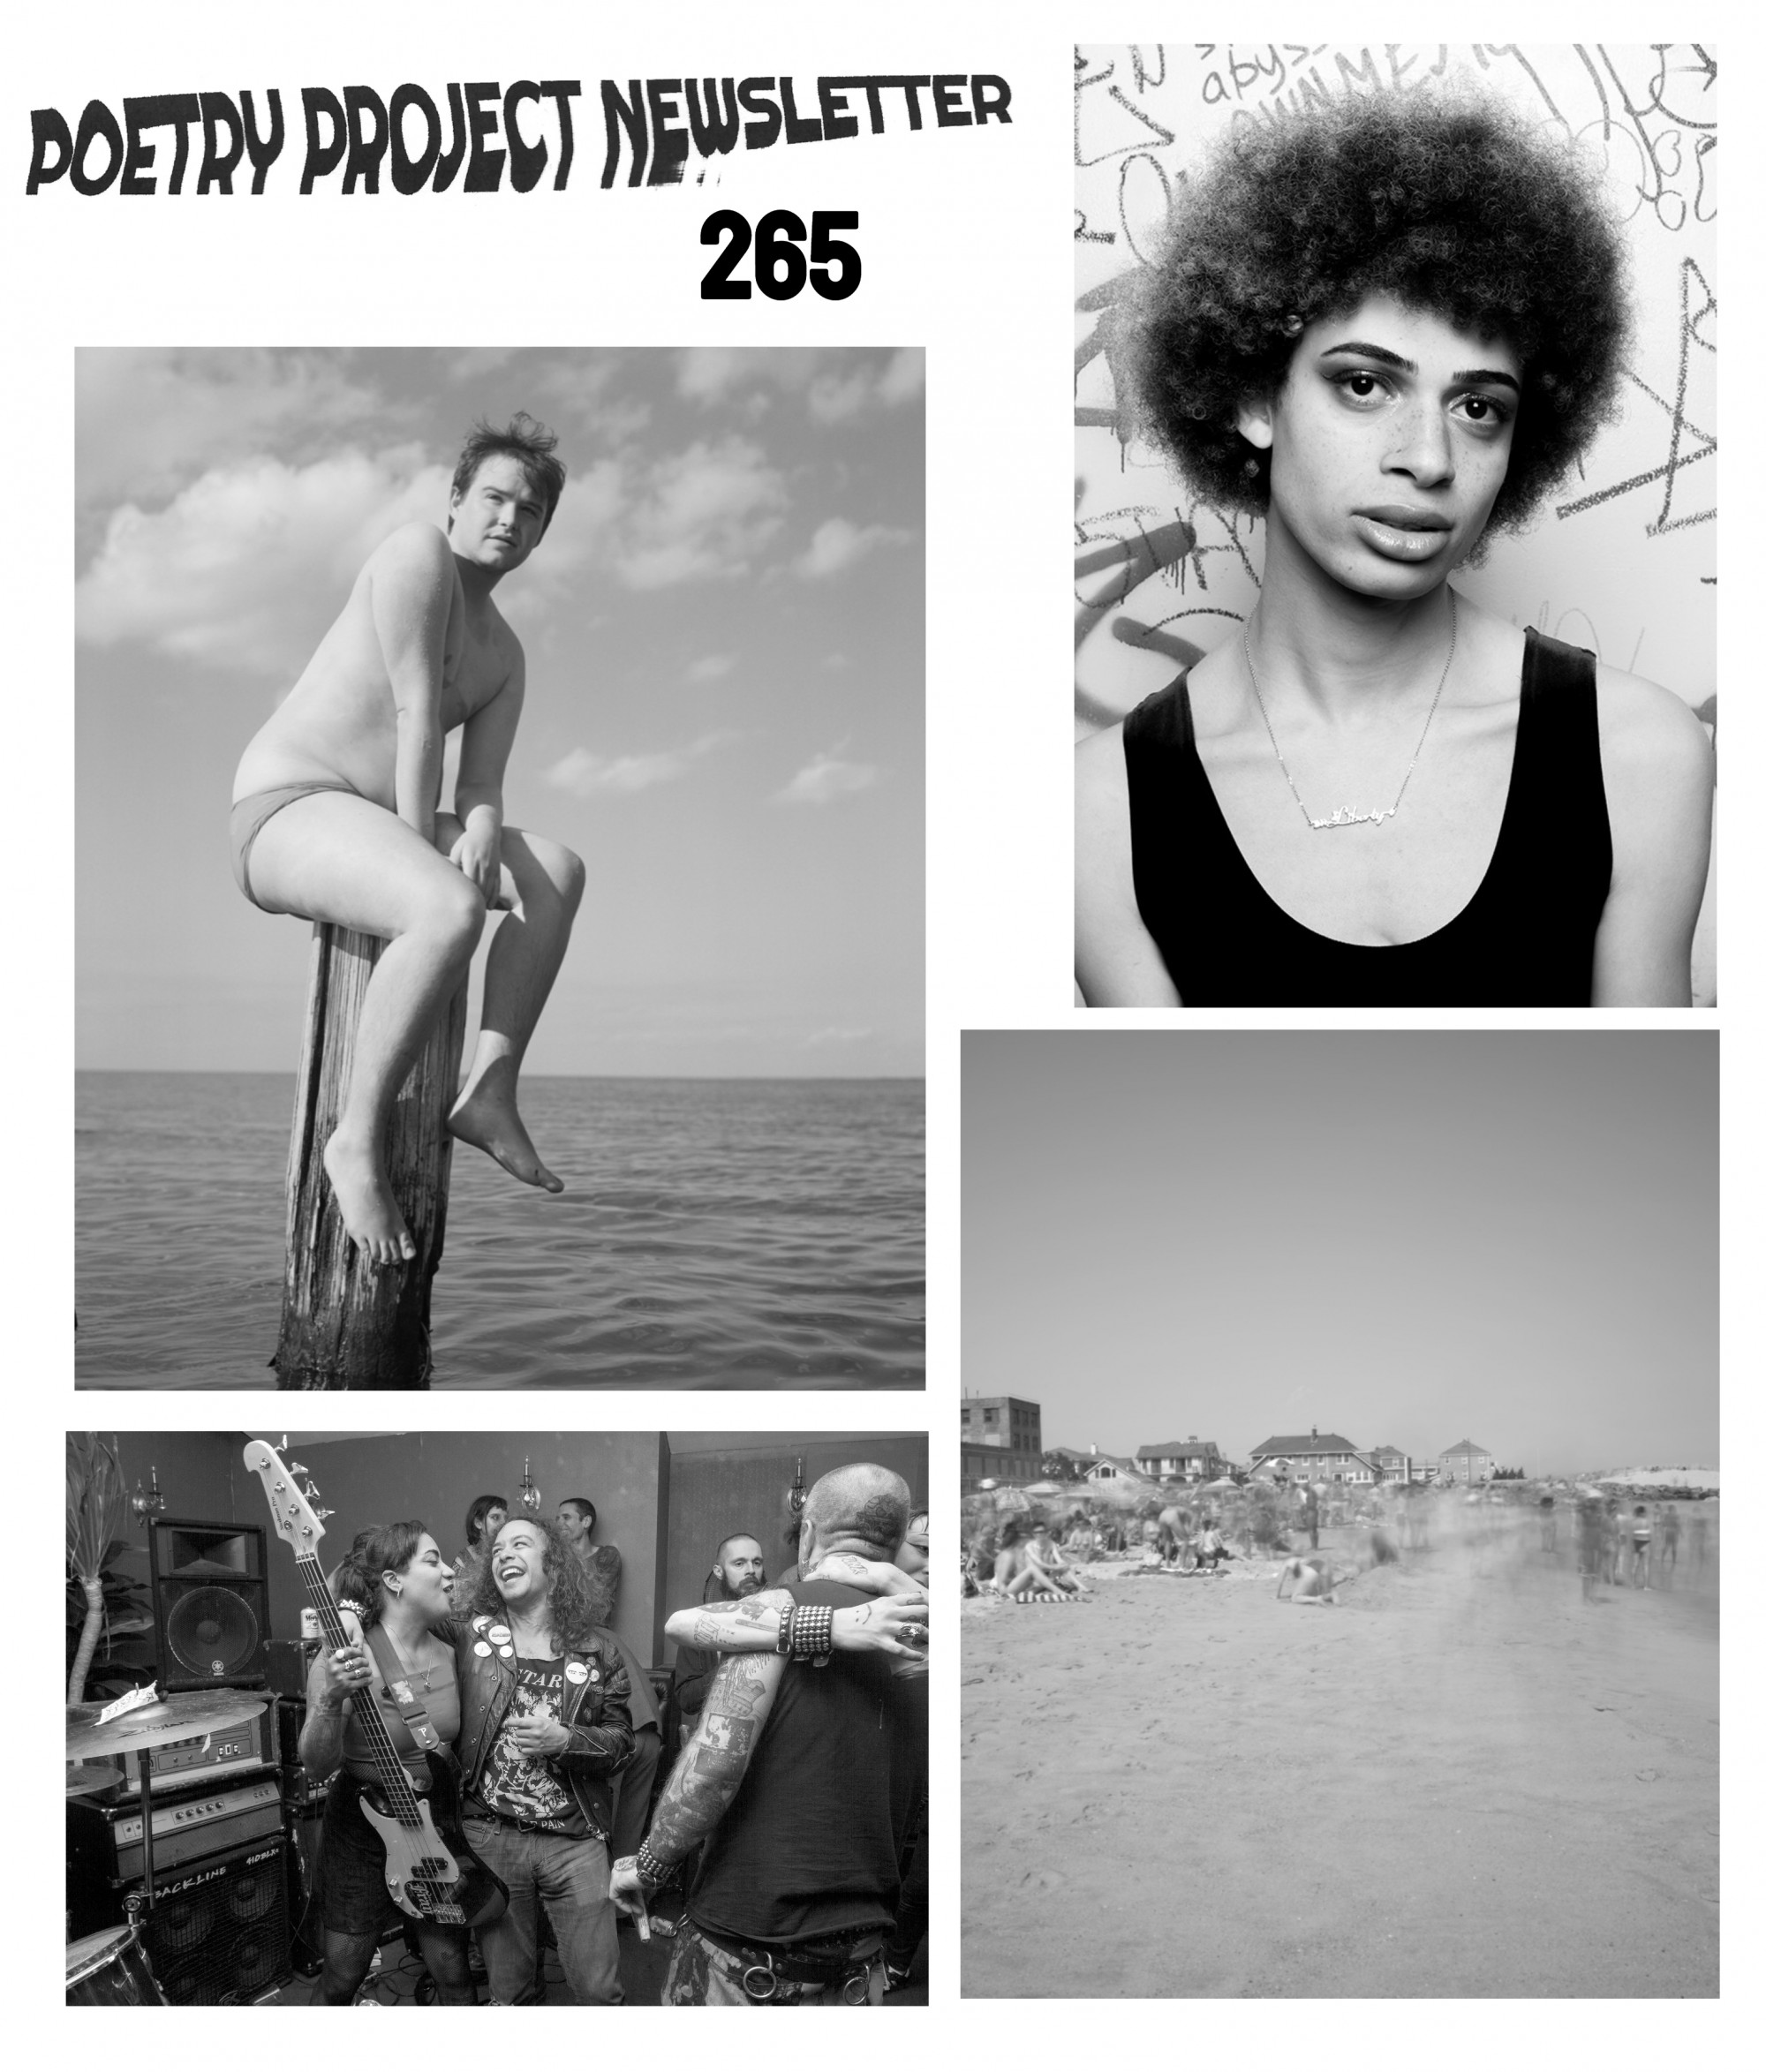 Photos by (clockwise from top left:) Chris Berntsen (photo of a person sitting on a pier pile in the water), Destiny Mata (portrait of a person wearing a black tank top), Chris Berntsen (landscape photo of a beach), Destiny Mata (a group of friends gathered and embracing, one holding a bass guitar)